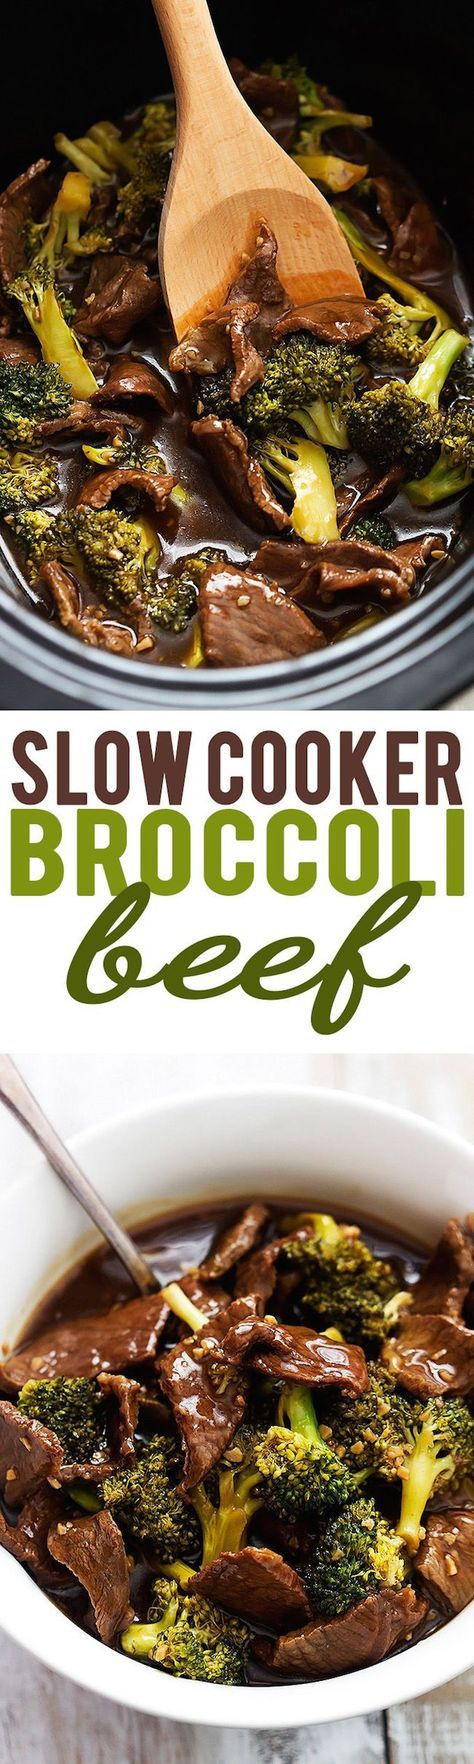 Slow Cooker Broccoli Beef | Creme de la Crumb